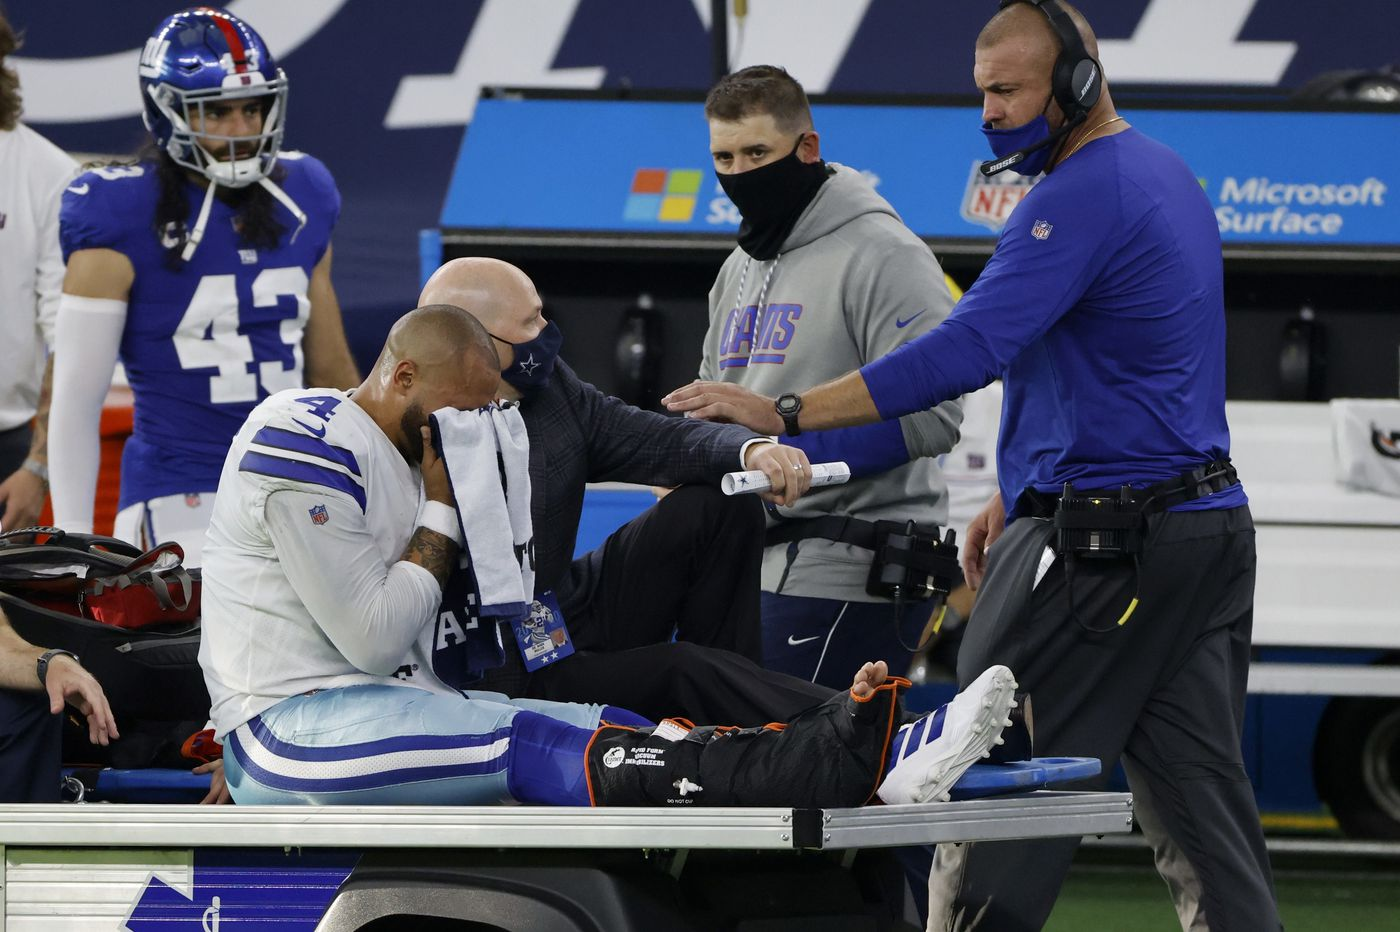 Only in the NFC East: Cowboys still the favorites after Dak Prescott's injury